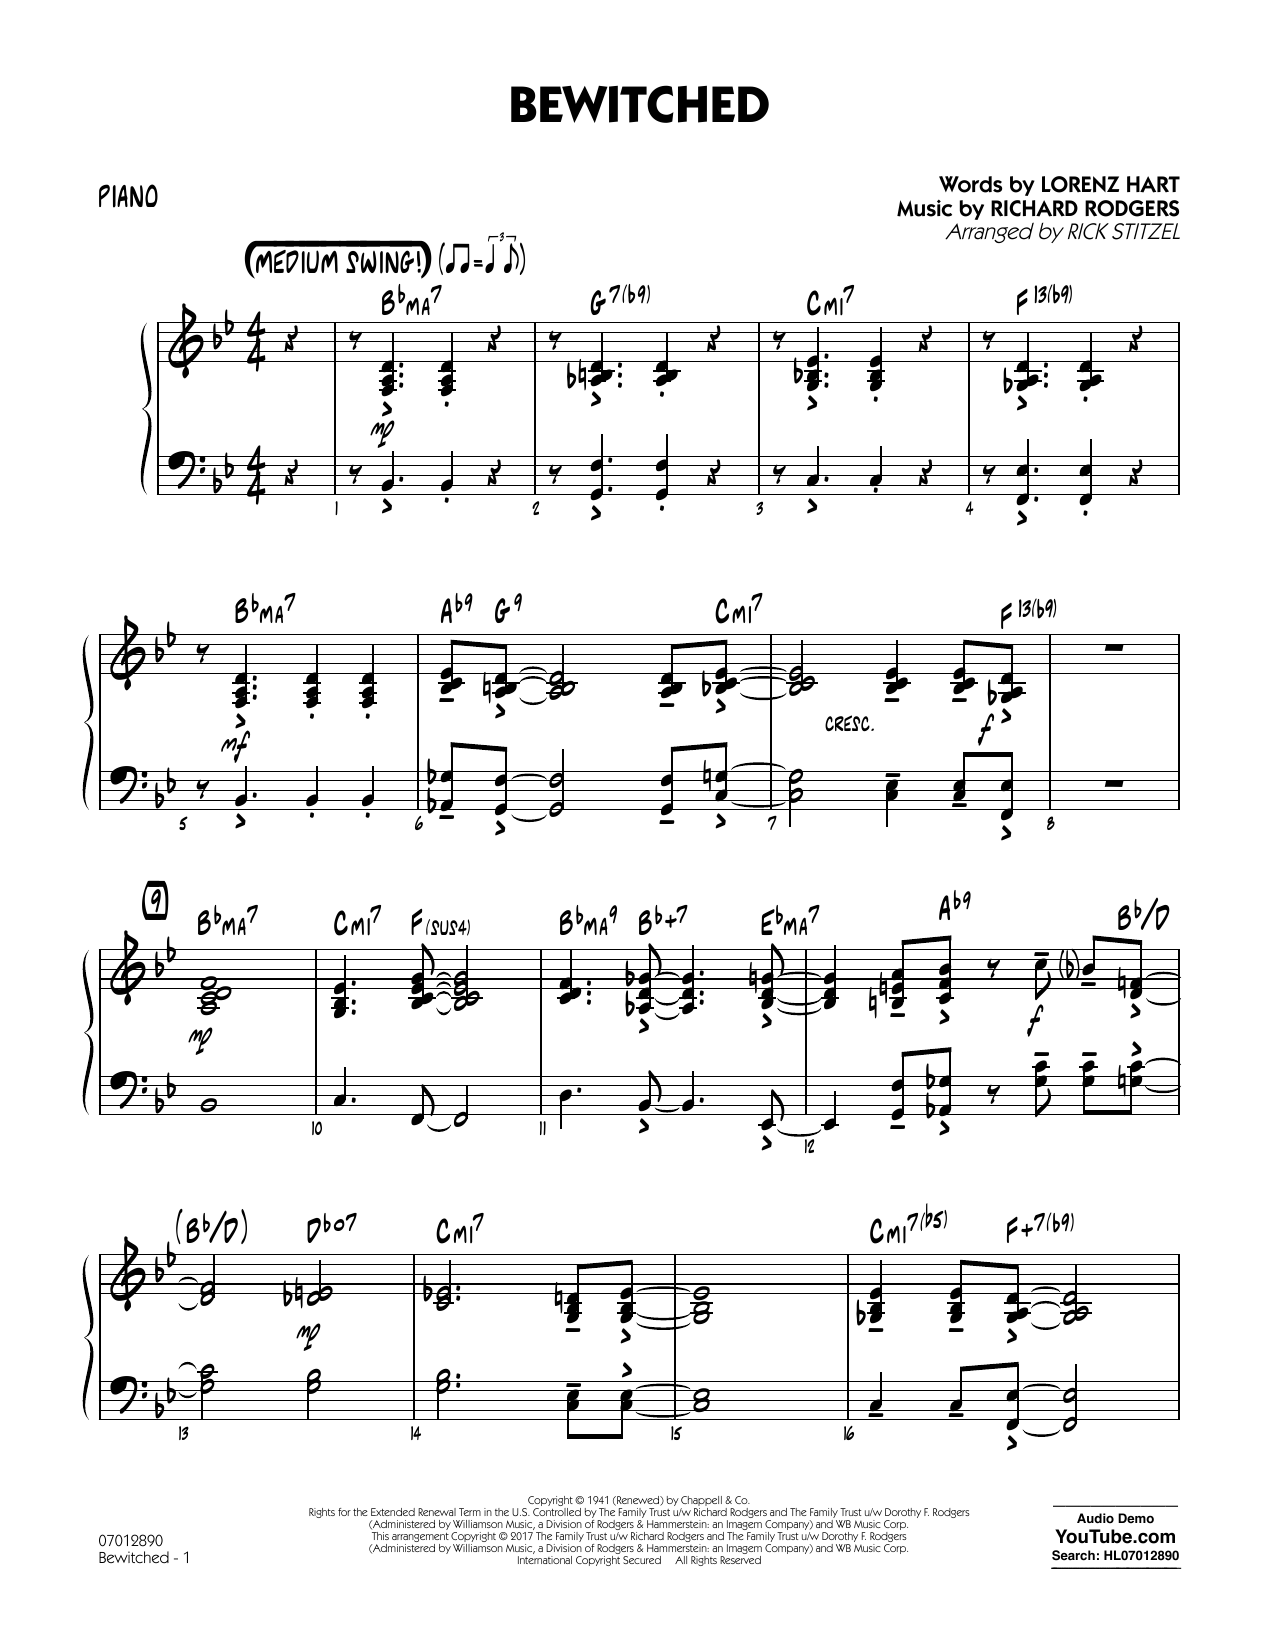 Bewitched - Piano Sheet Music